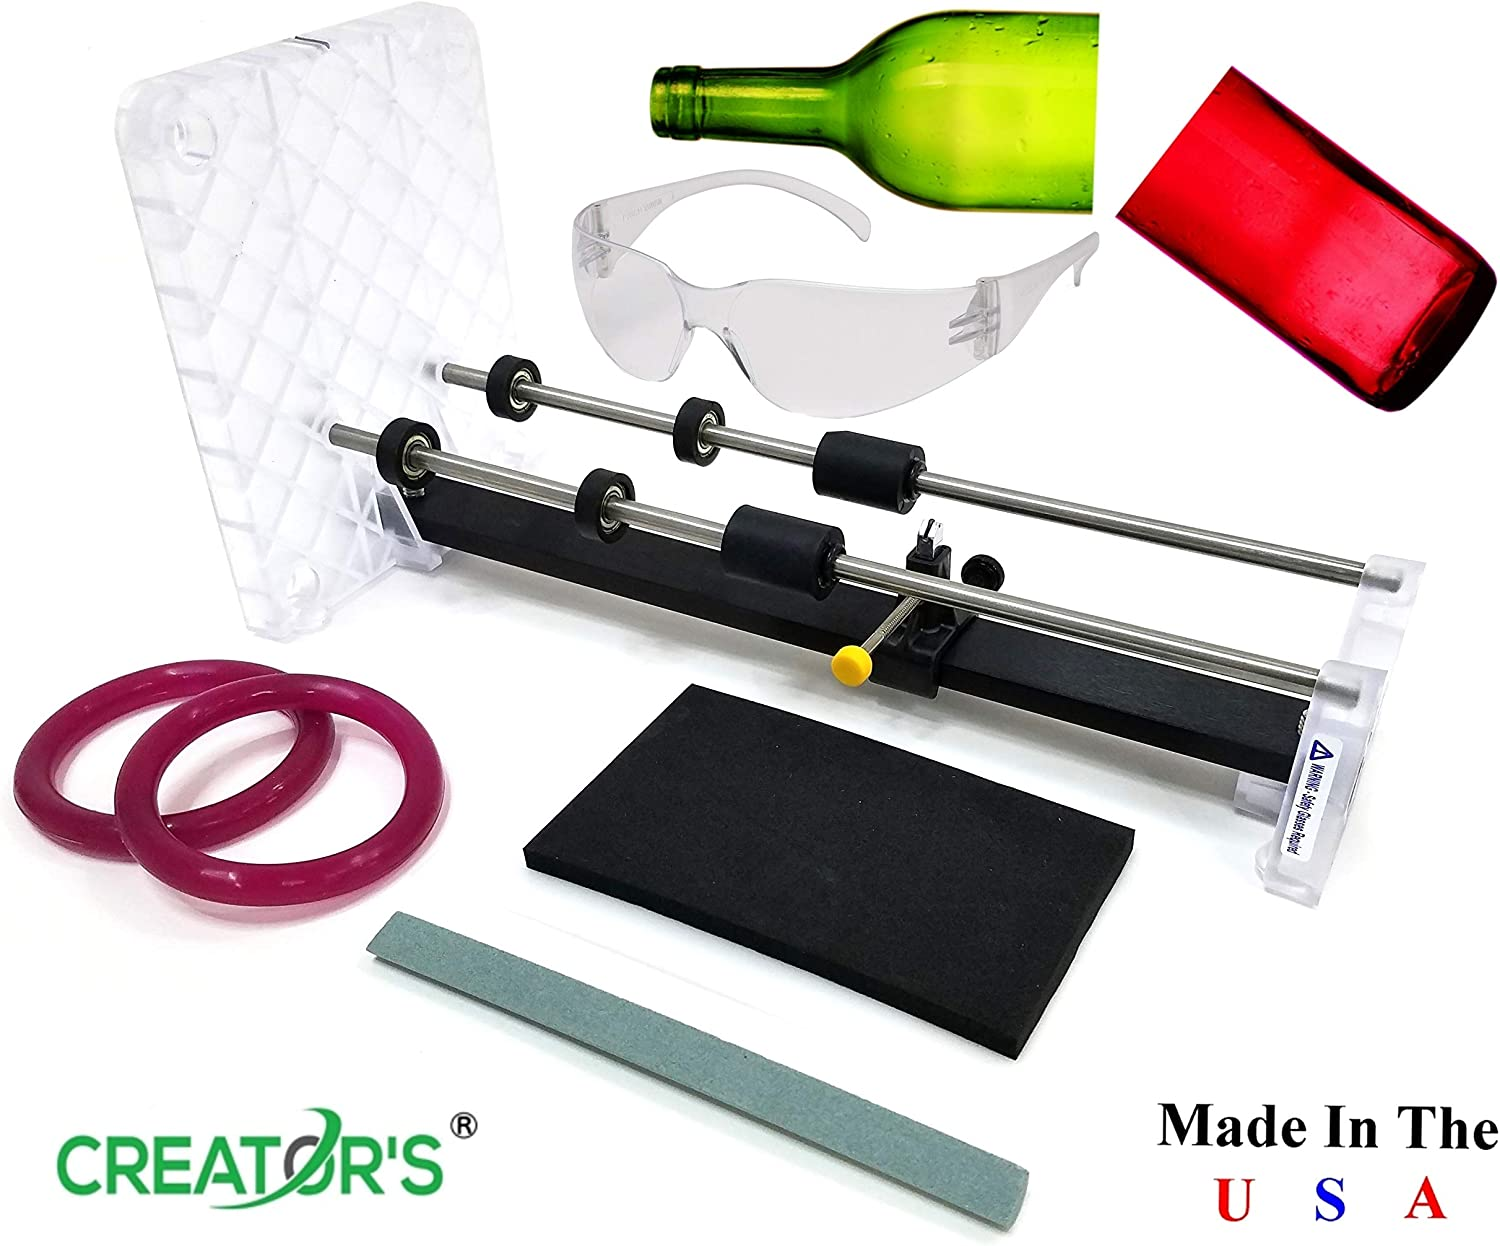 Creator's Glass Bottle Cutter Machine Kit - Home Entertainment System